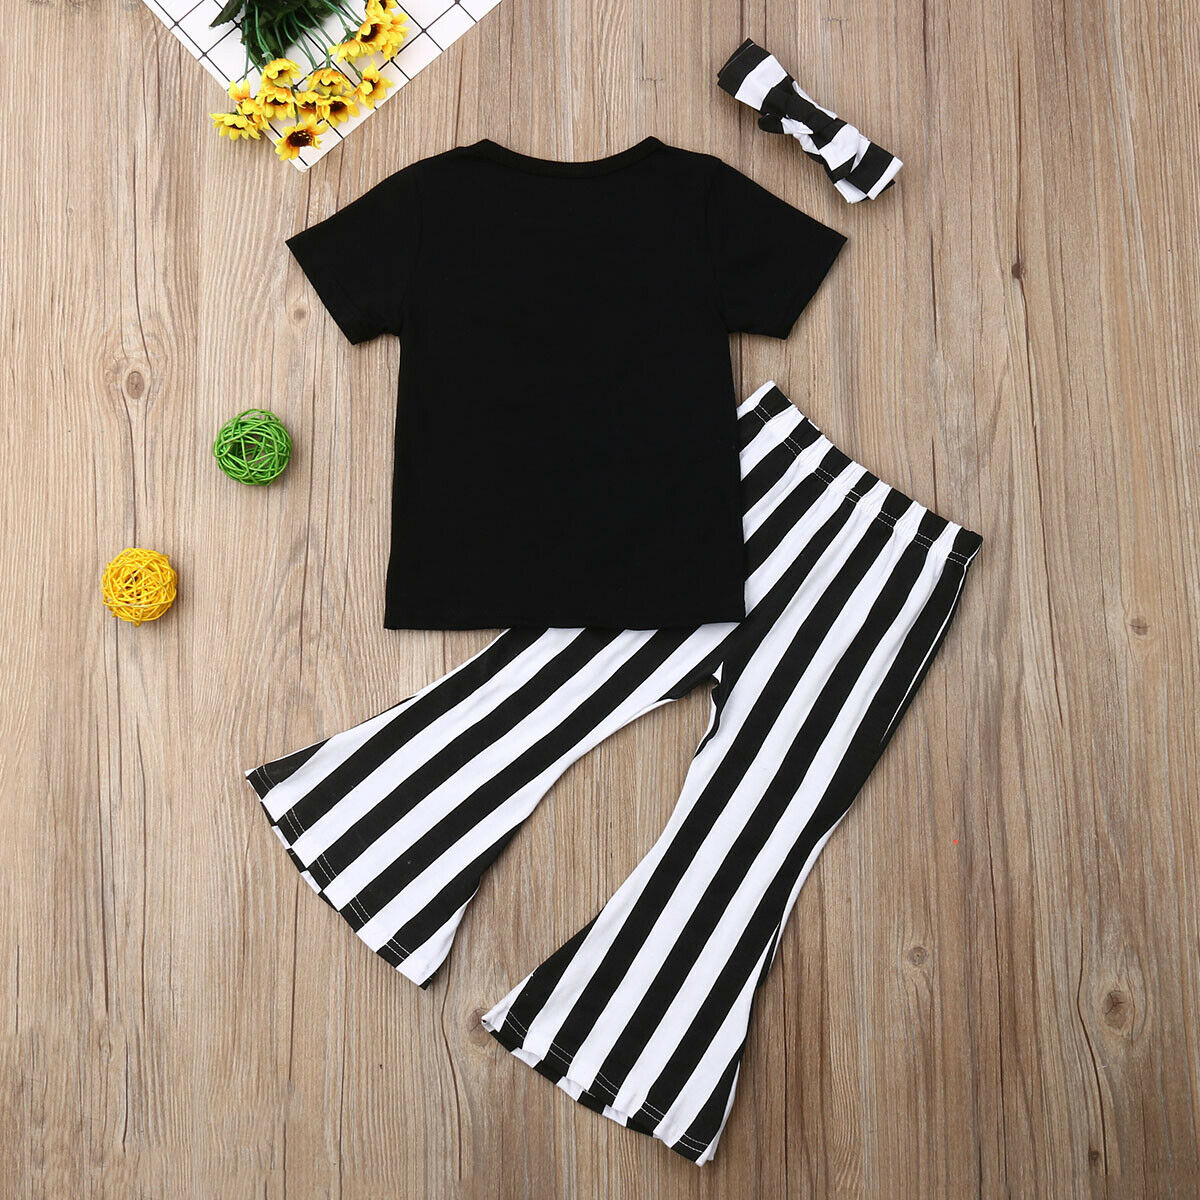 3Pcs Kids Baby Girl Letter Tops Short Sleeve T shirt Striped Flare Long Pants Sunsuit Outfits Clothes Set 2019 in Clothing Sets from Mother Kids